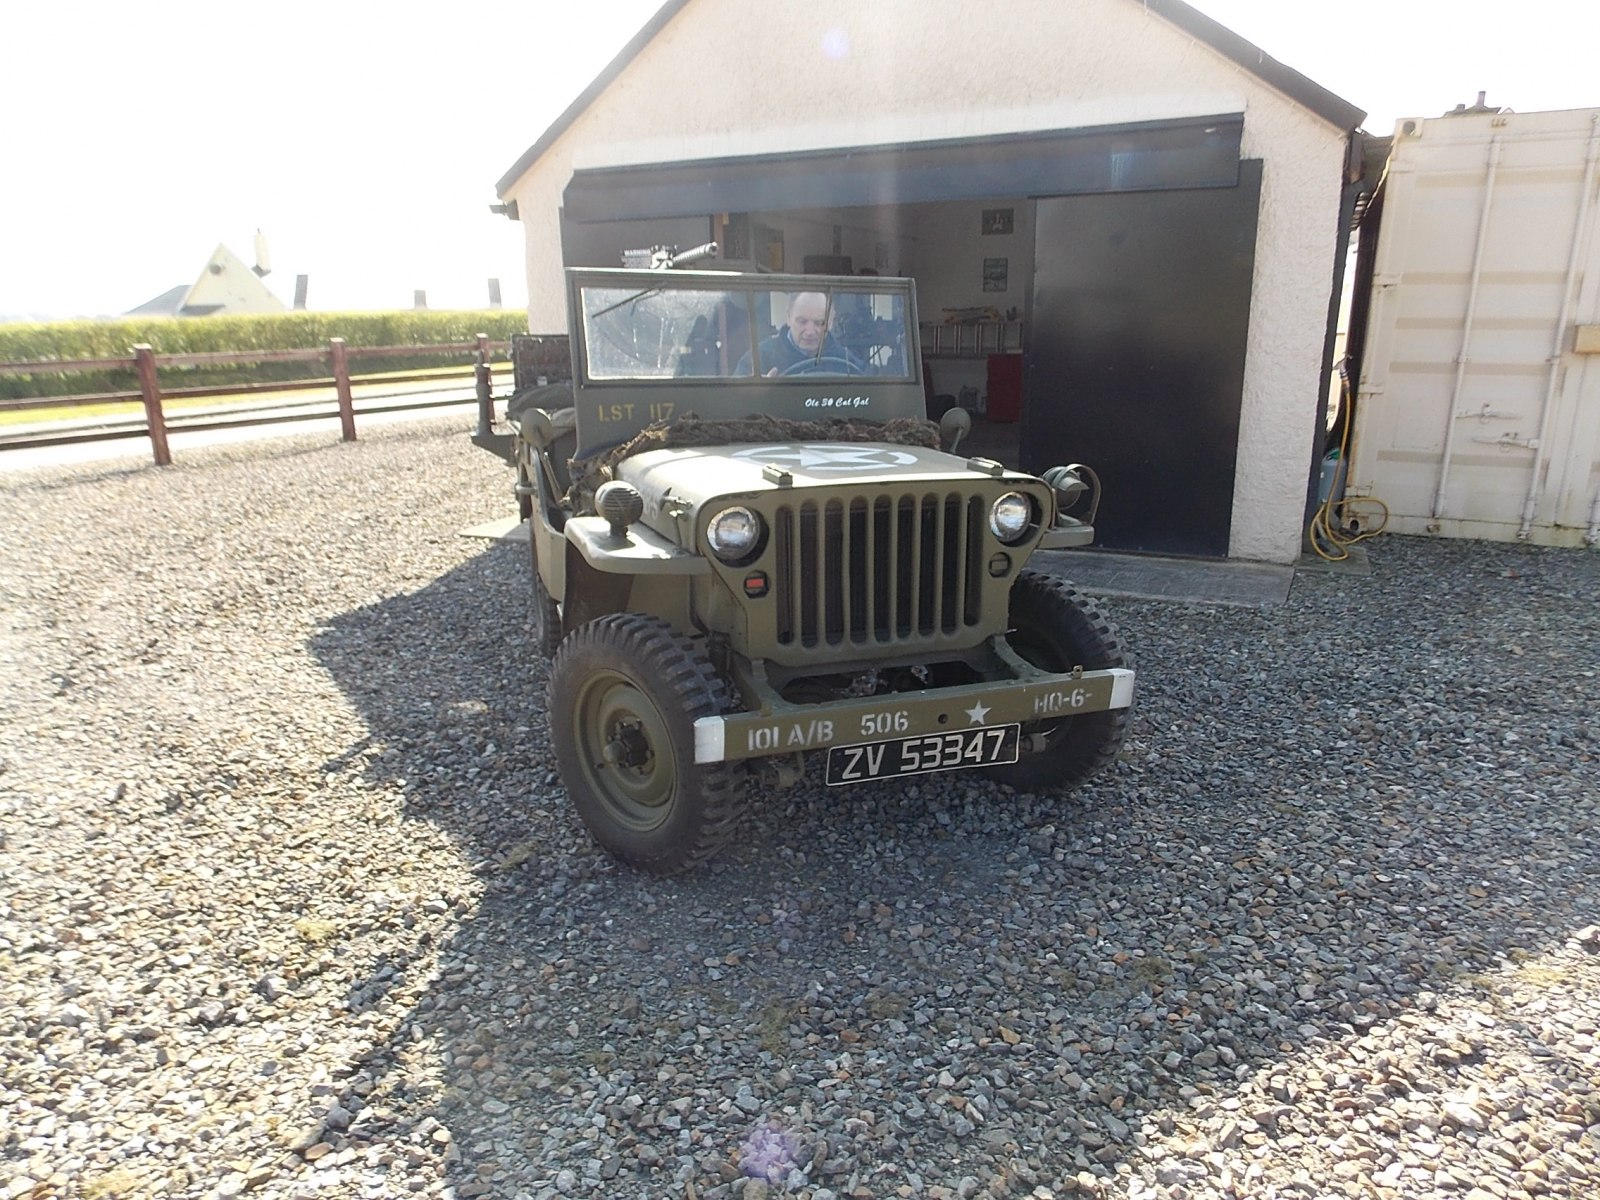 1945-Ford-GPW-Jeep-front-view-The-Abingdon-Collection-2017